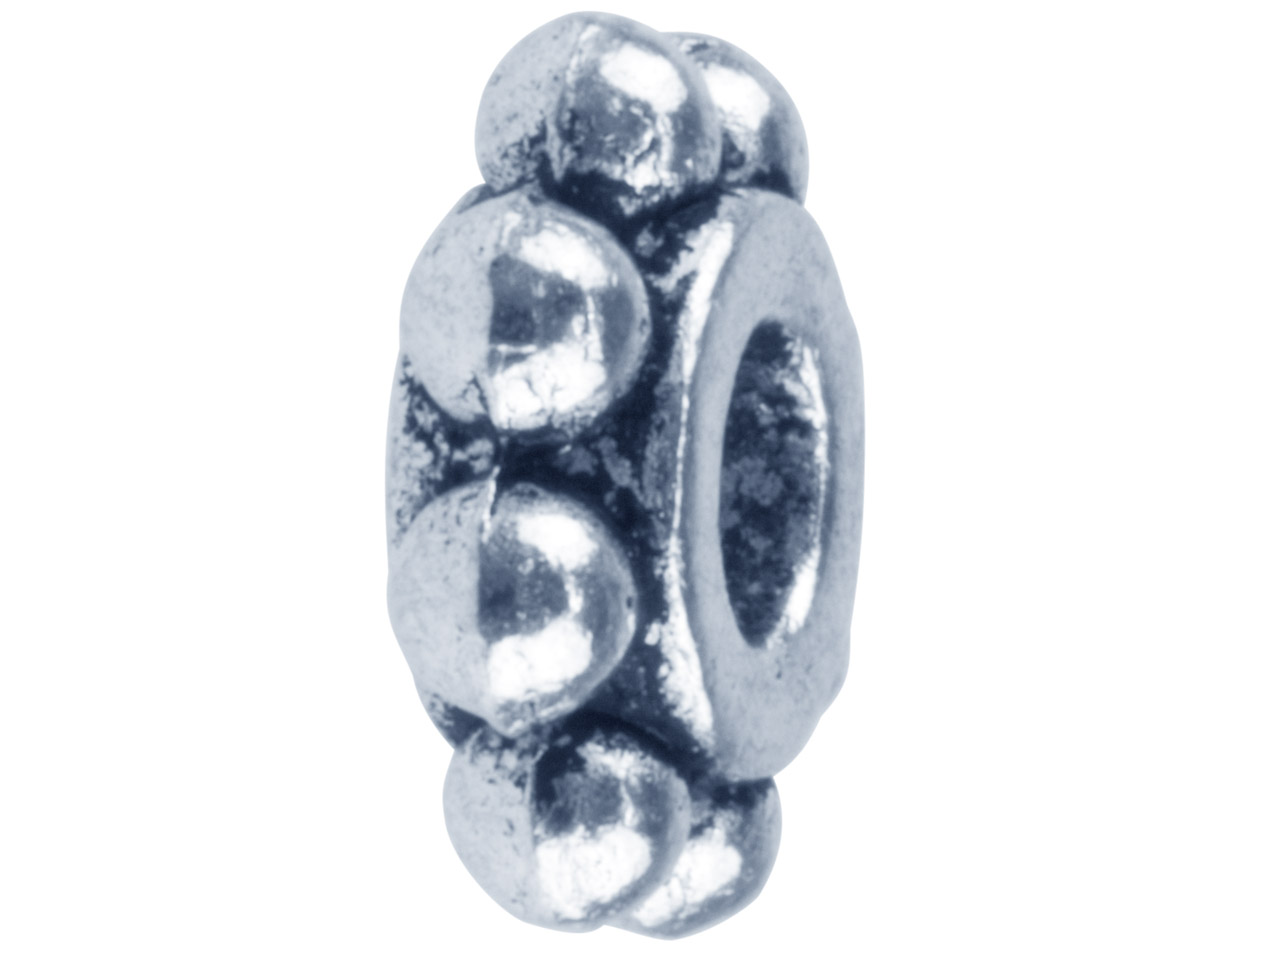 Silver Tone Ball Edged Spacer 9x3mm Pack of 10